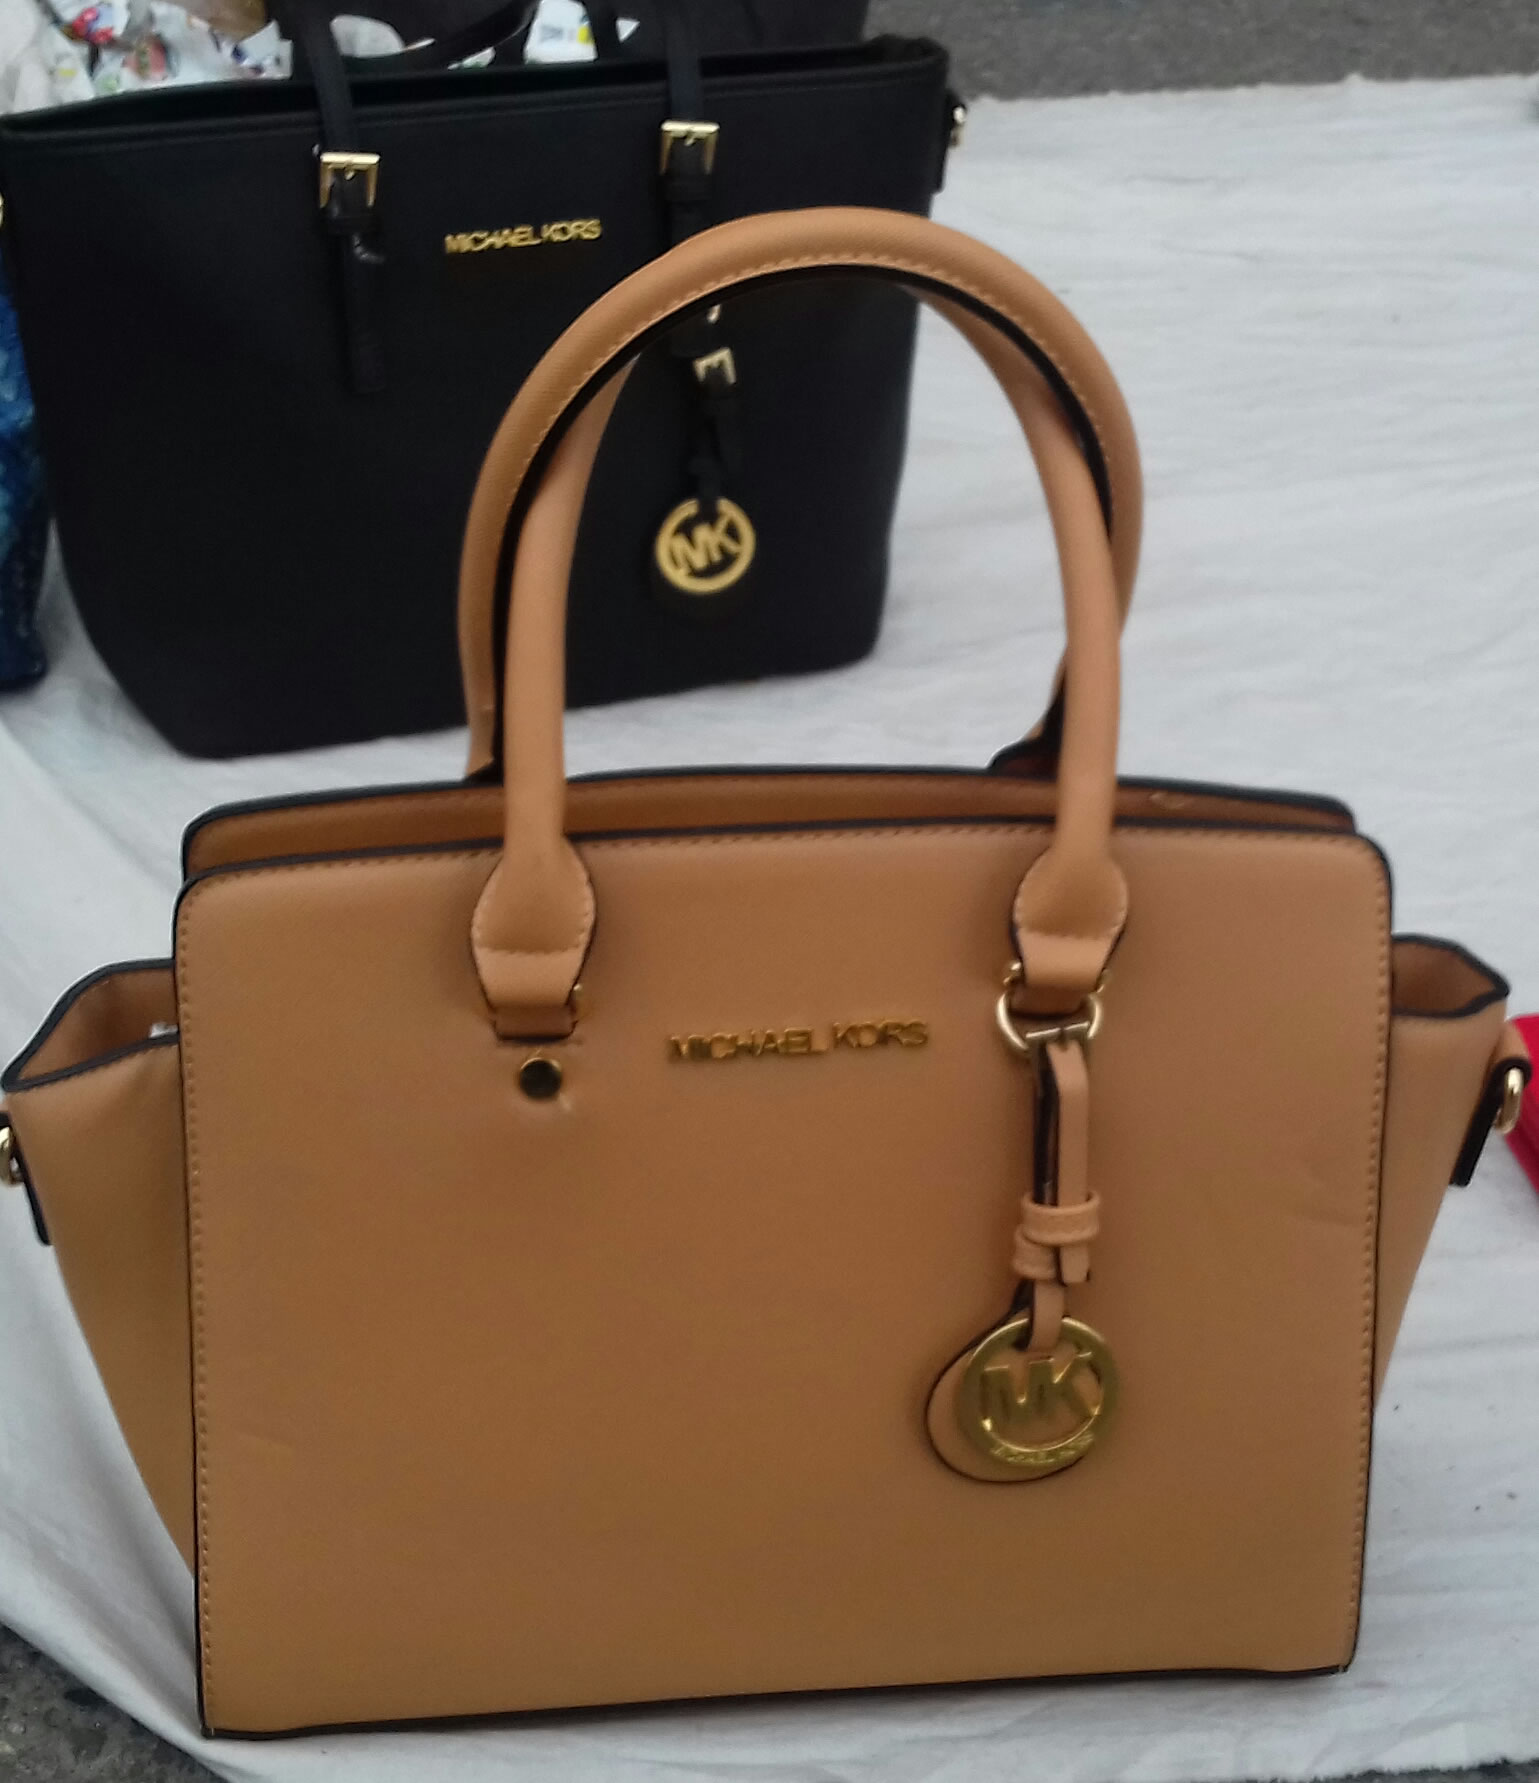 a3dad6679a07 Michael Kors bags - why don t you acquire yours at Amolese s now